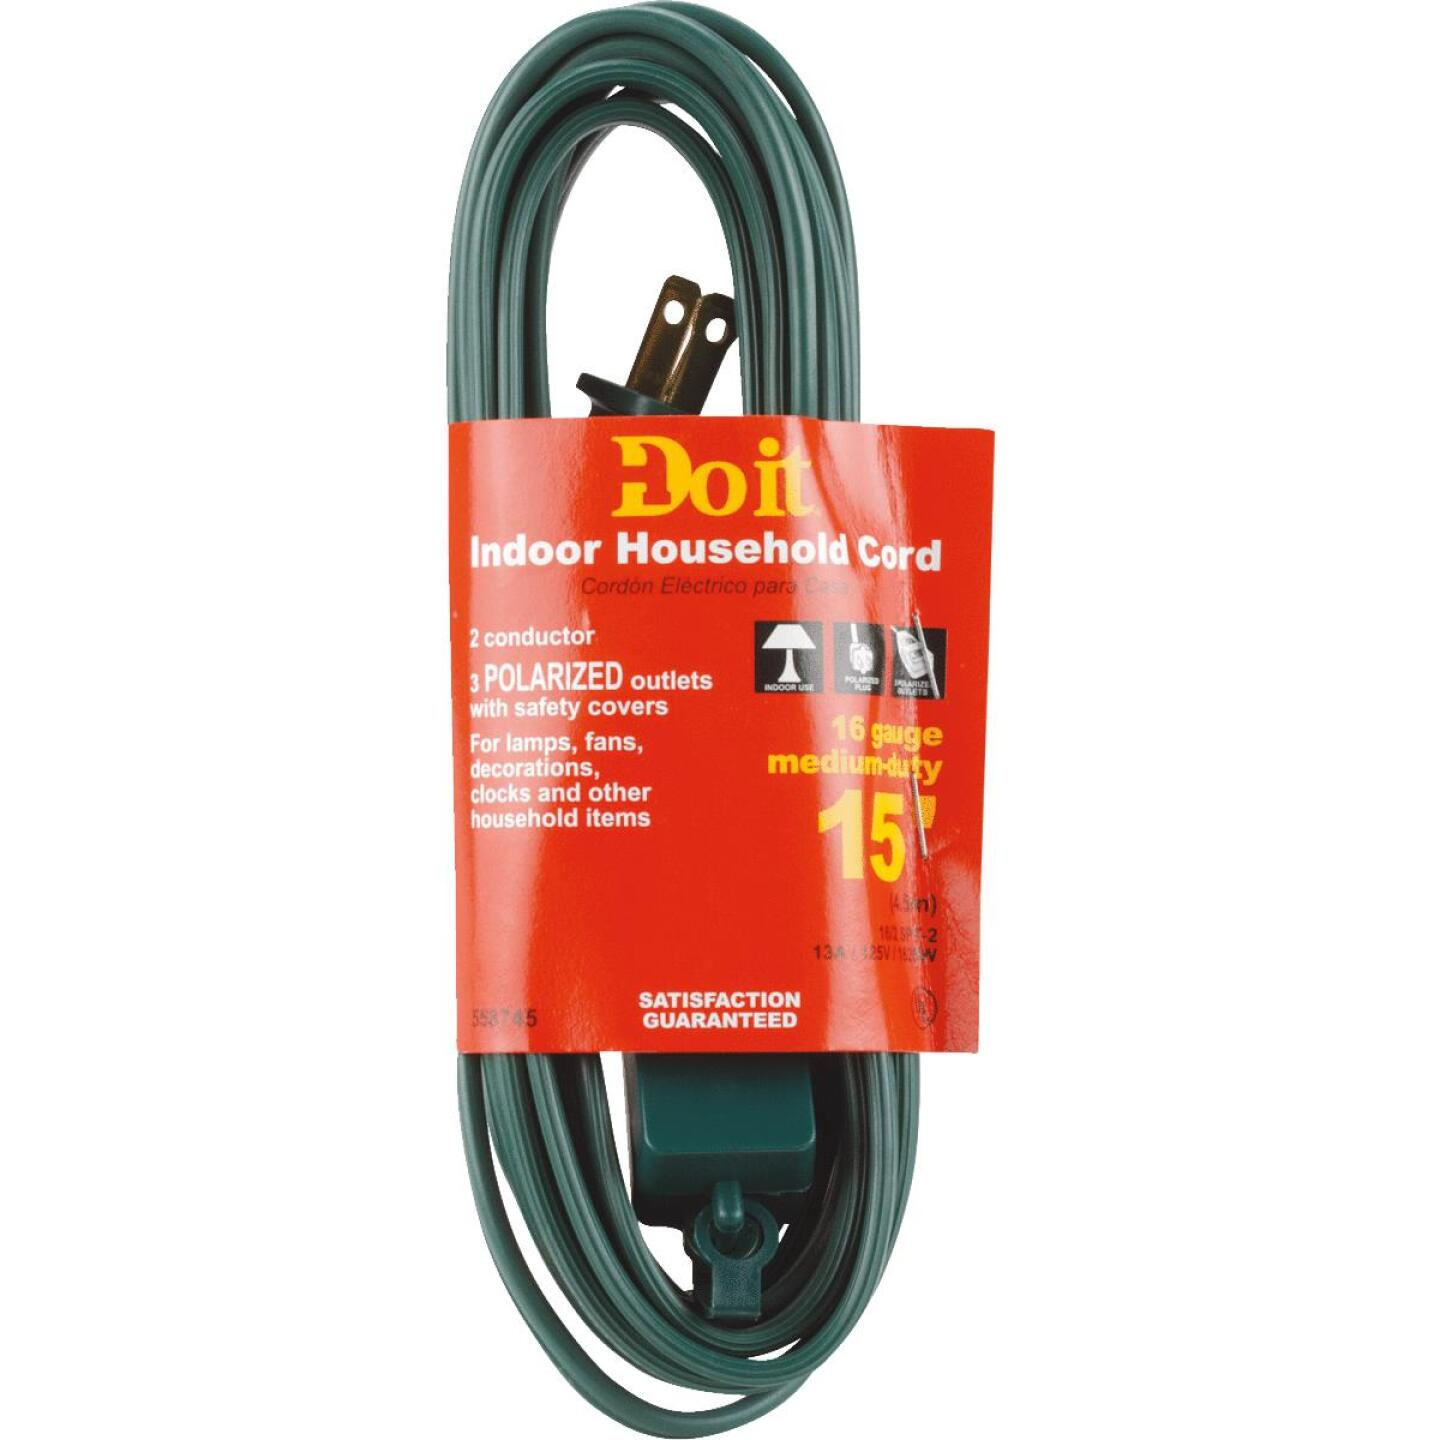 Do it 15 Ft. 16/2 Green Cube Tap Extension Cord Image 2